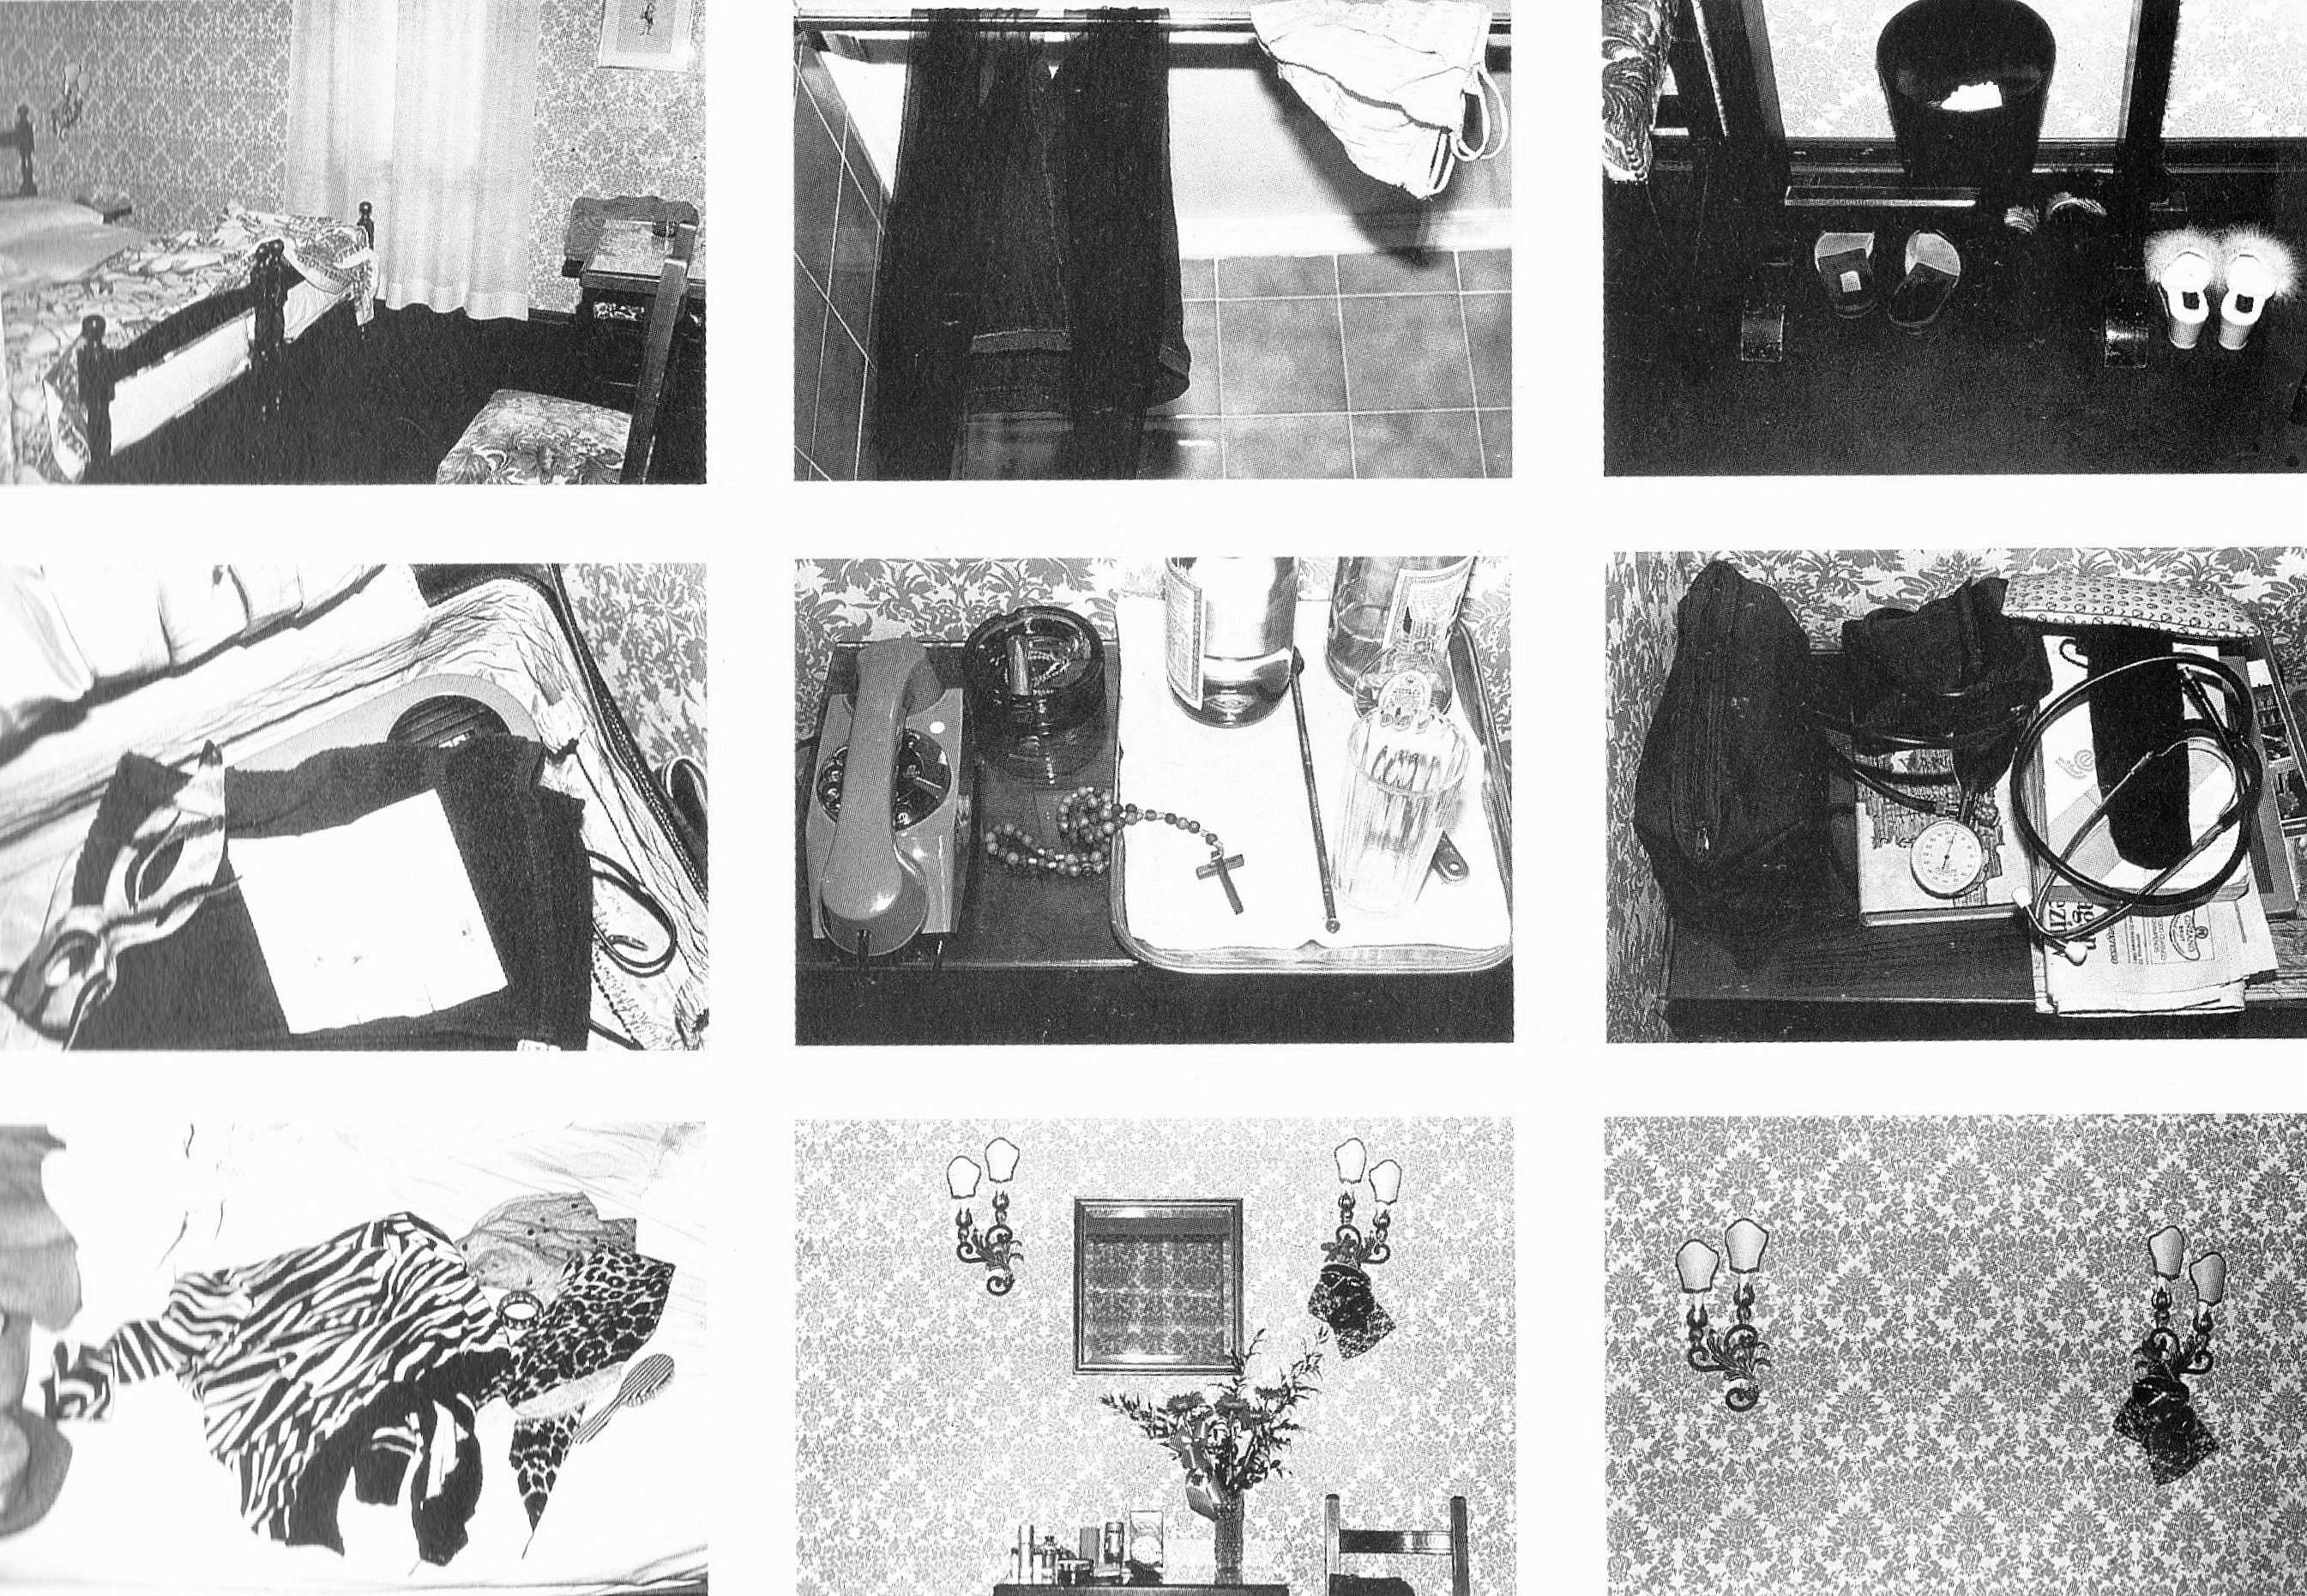 """Sophie Calle """"The Hotel, Room 44"""""""